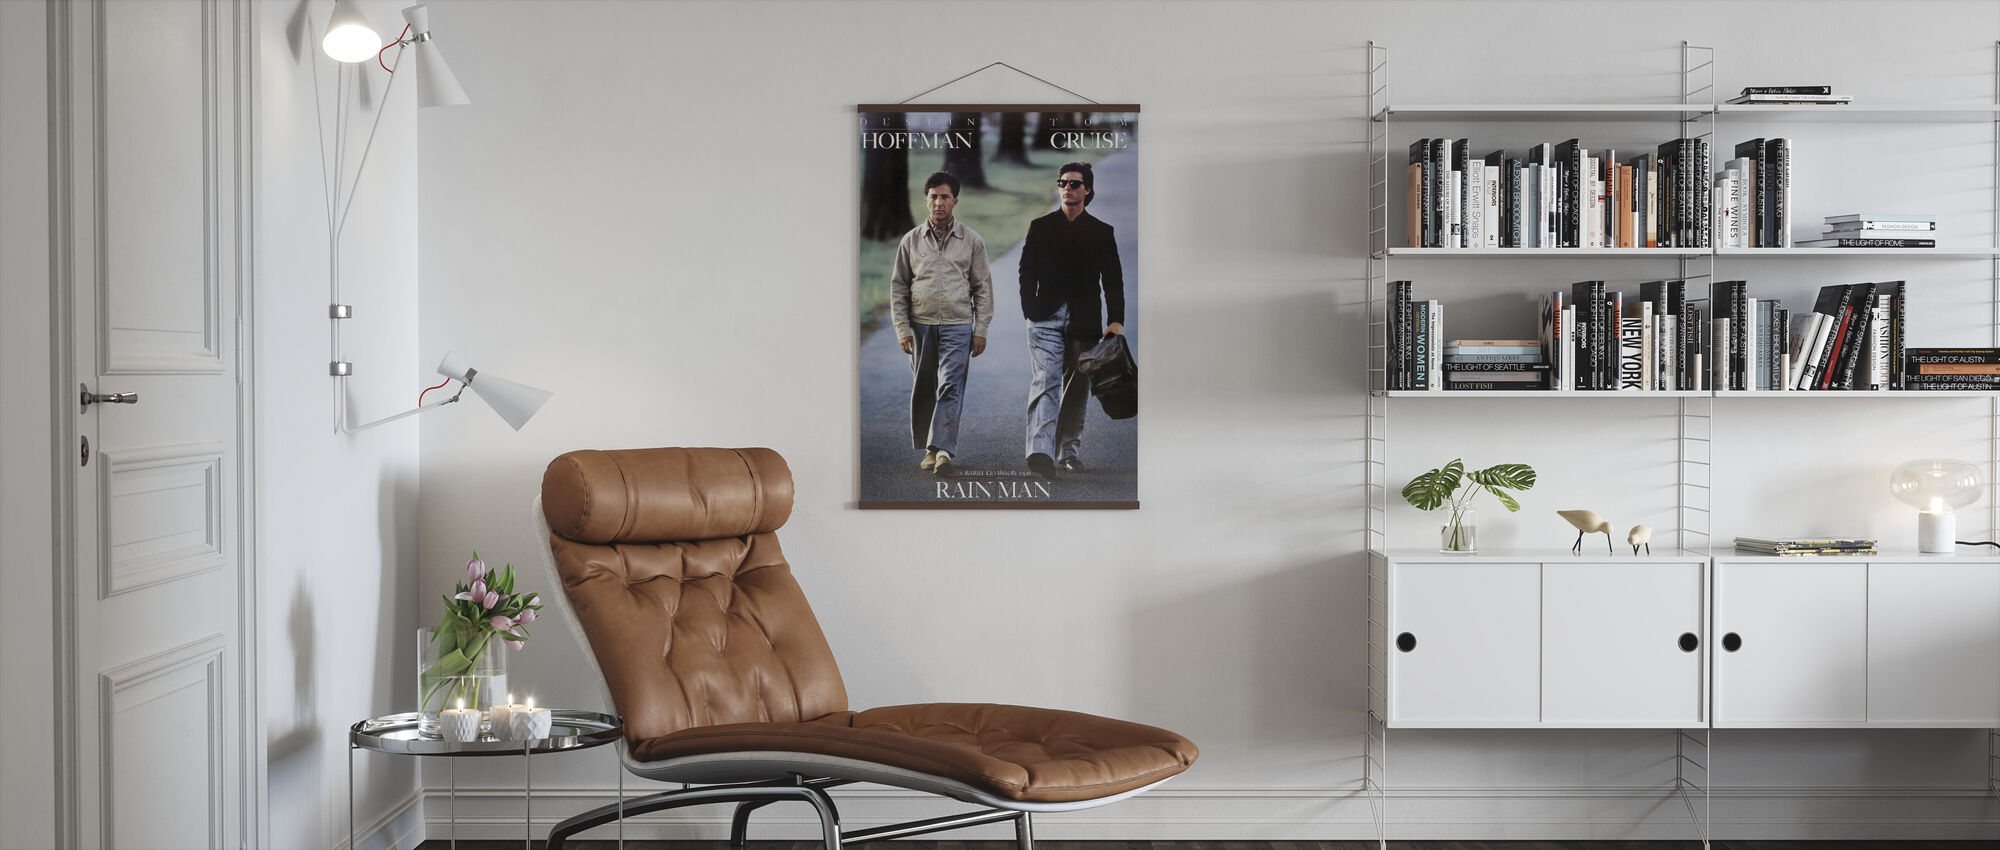 Tom Cruise and Dustin Hoffman in Rain Man - Poster - Living Room